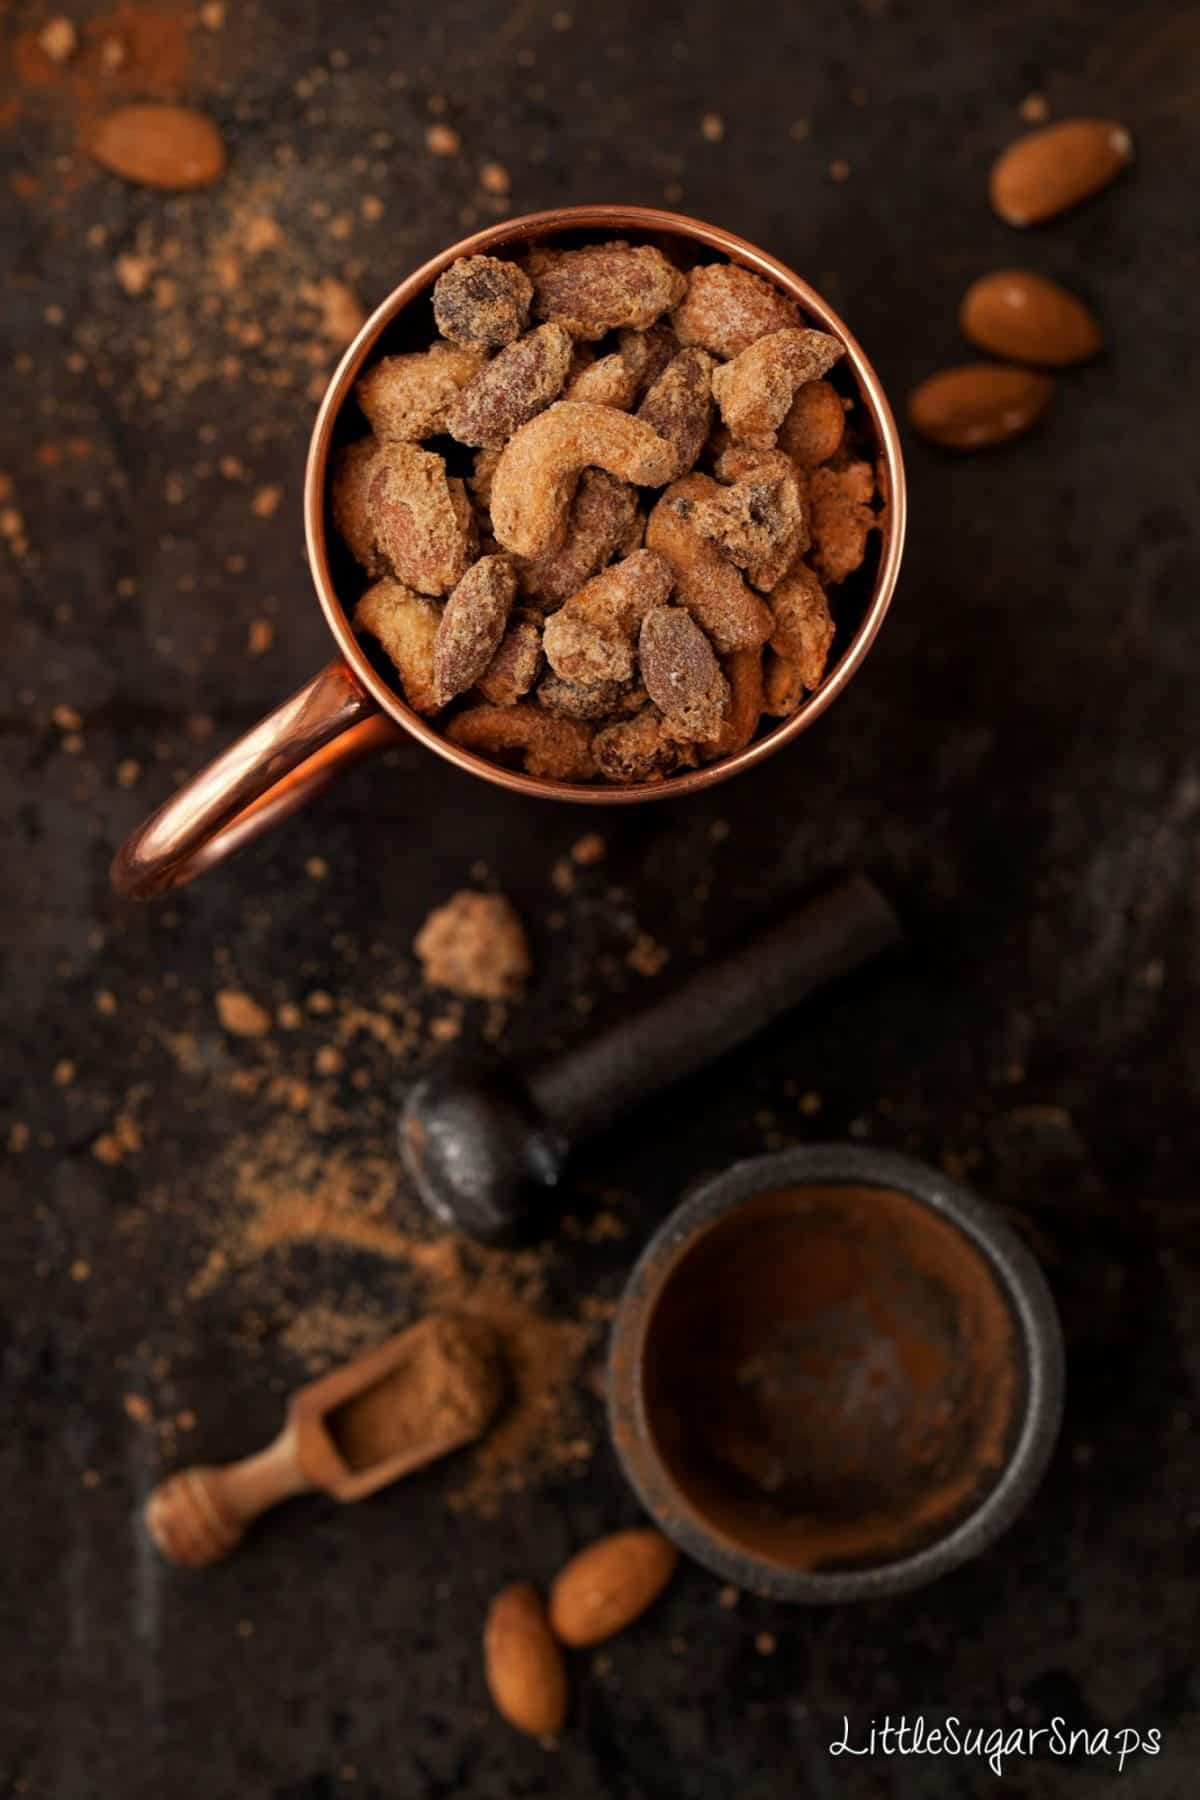 Chai spiced candied nuts in a copper mug.